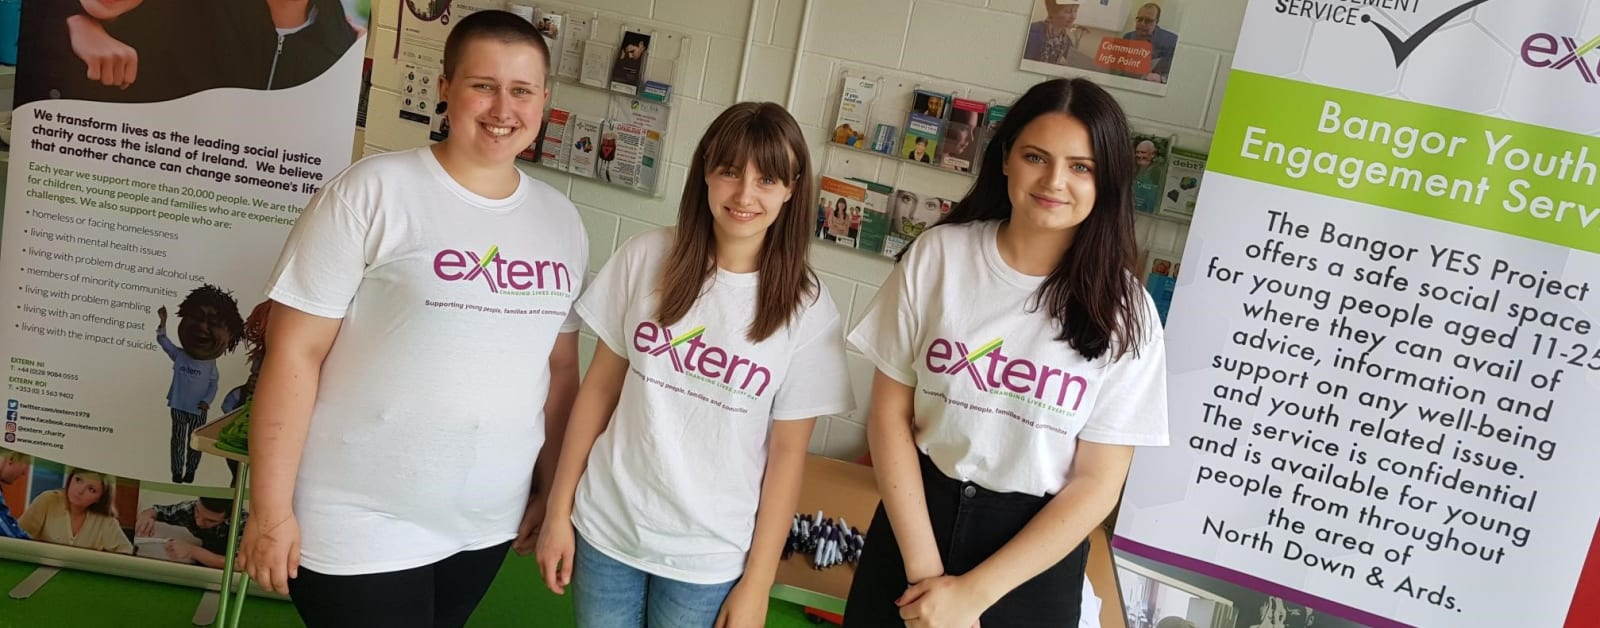 Extern's Youth Engagement Service marks new chapter in helping young people across North Down and Ards